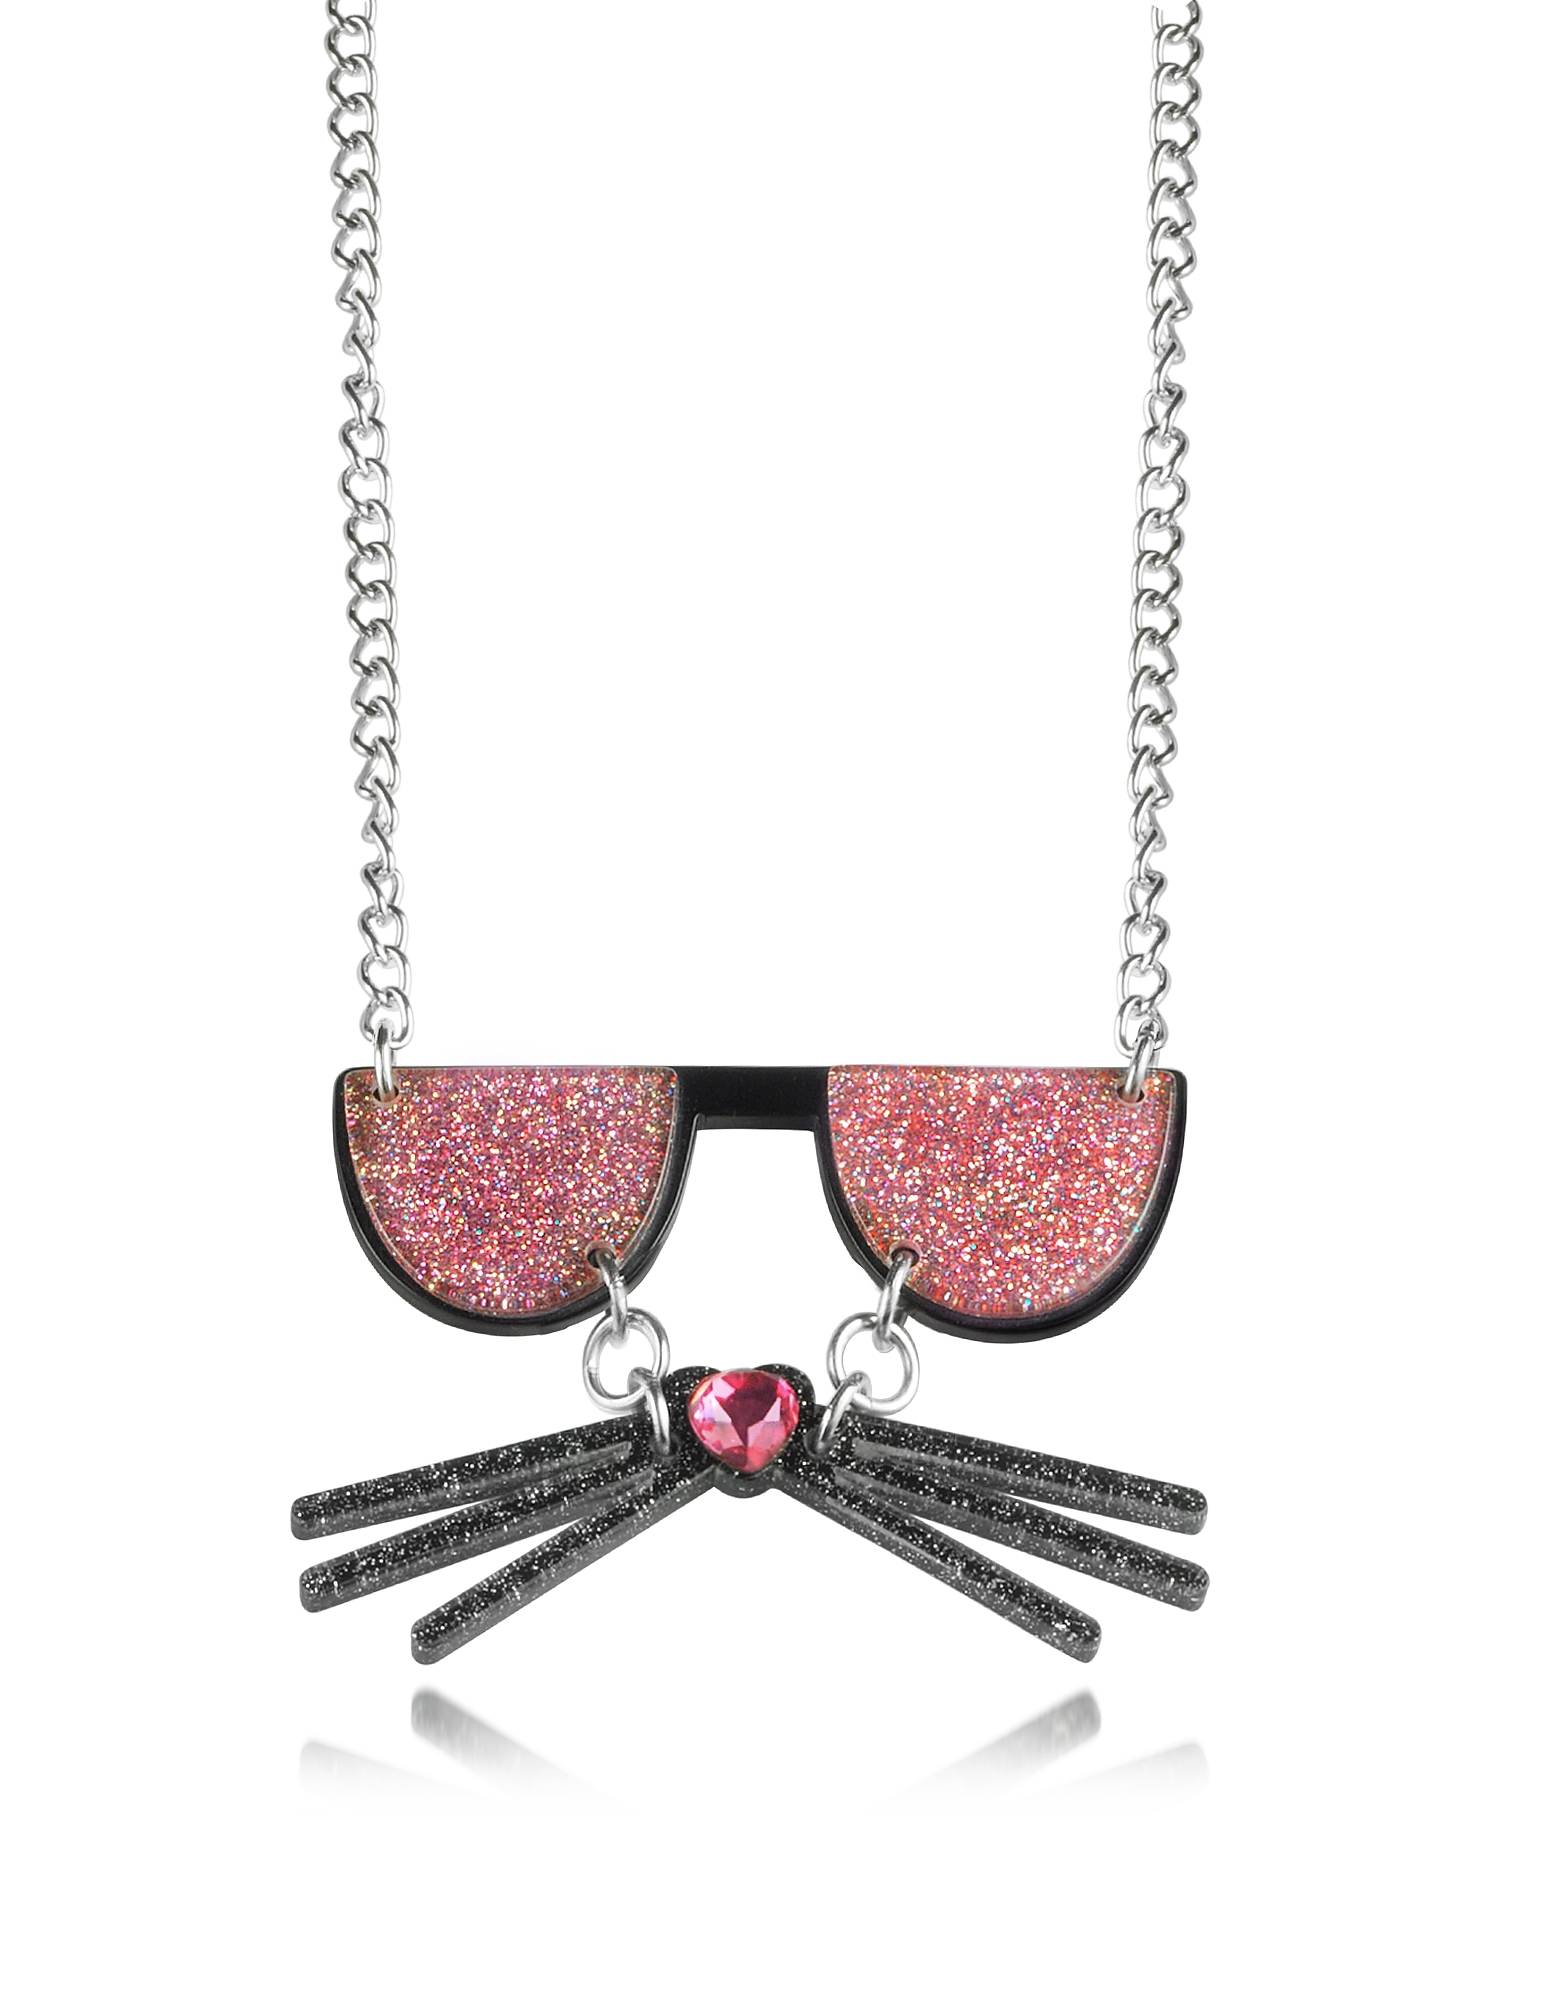 Karl Lagerfeld Necklaces, K/Kocktail Necklace w/Glitter Effect